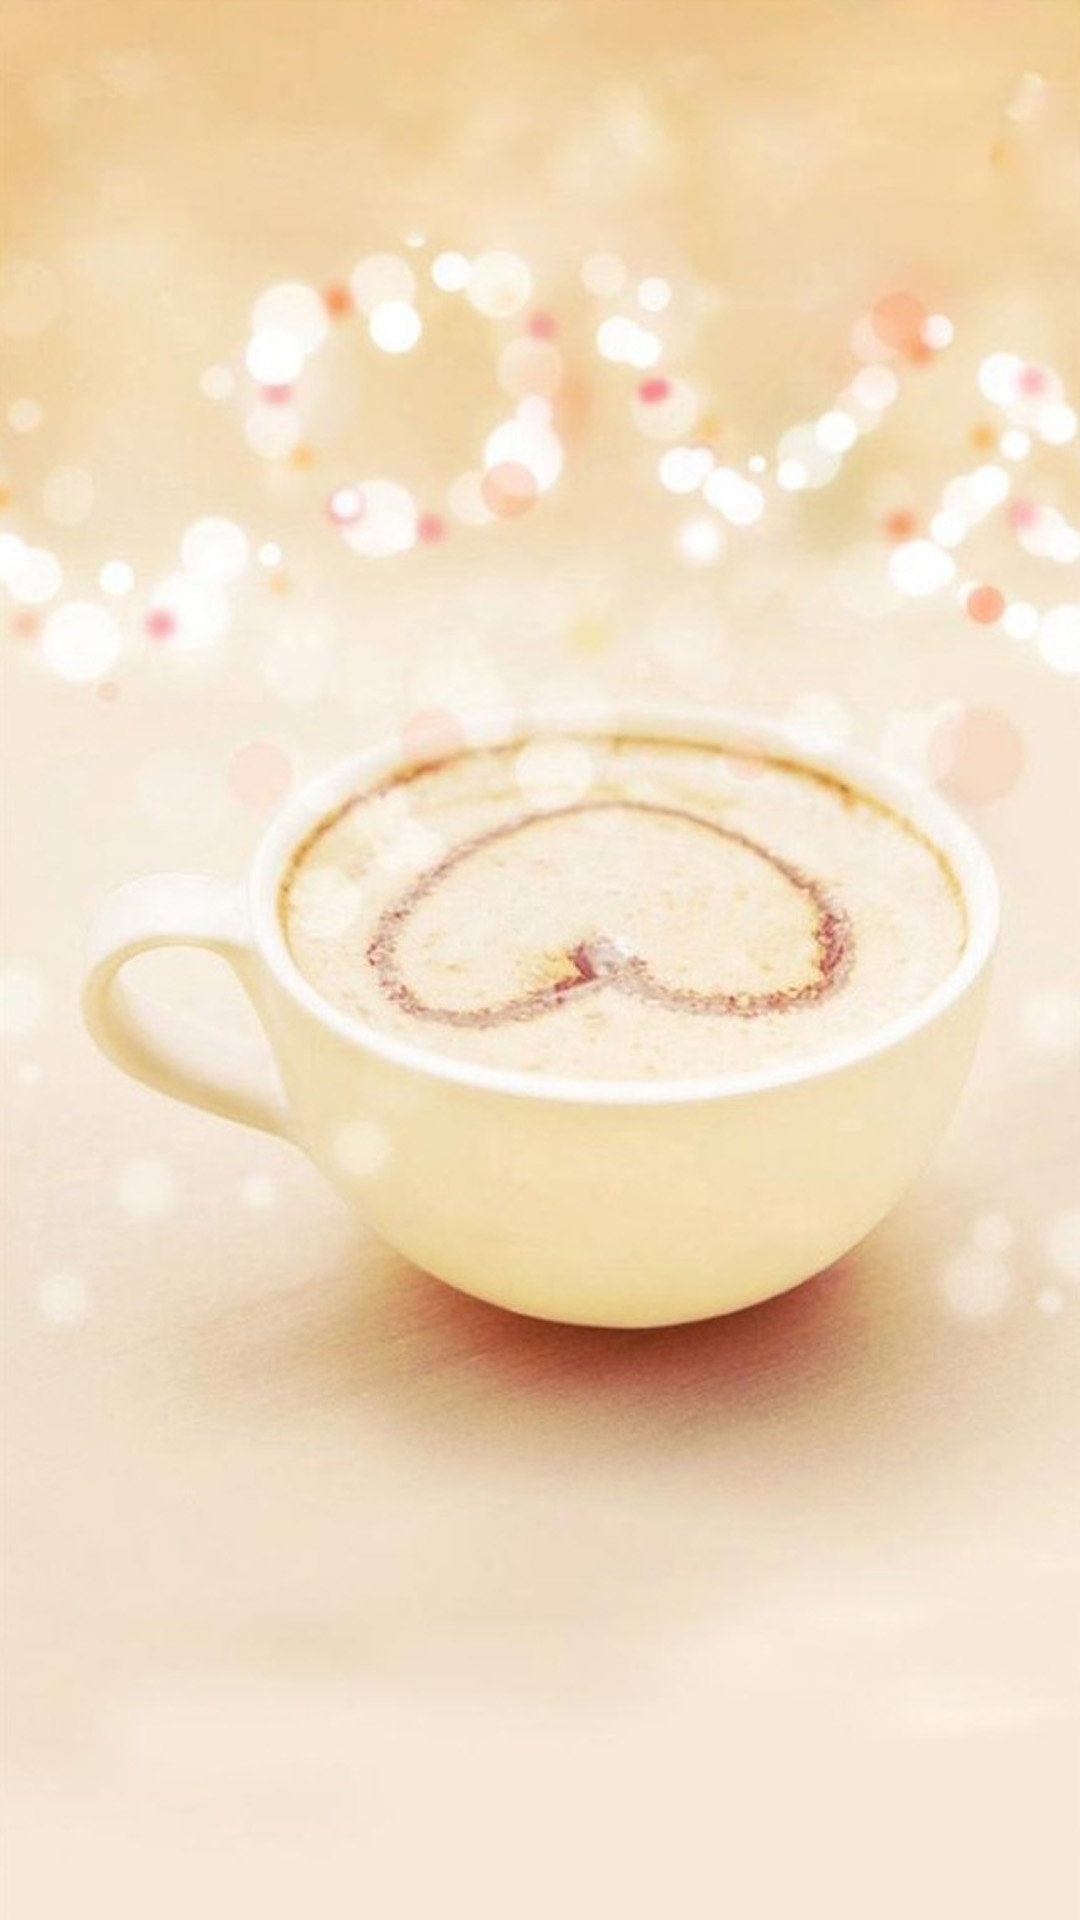 Cute Girly Wallpapers For Phone Heart Latte Art A Girly Iphone Wallpapers Iphone Wallpaper